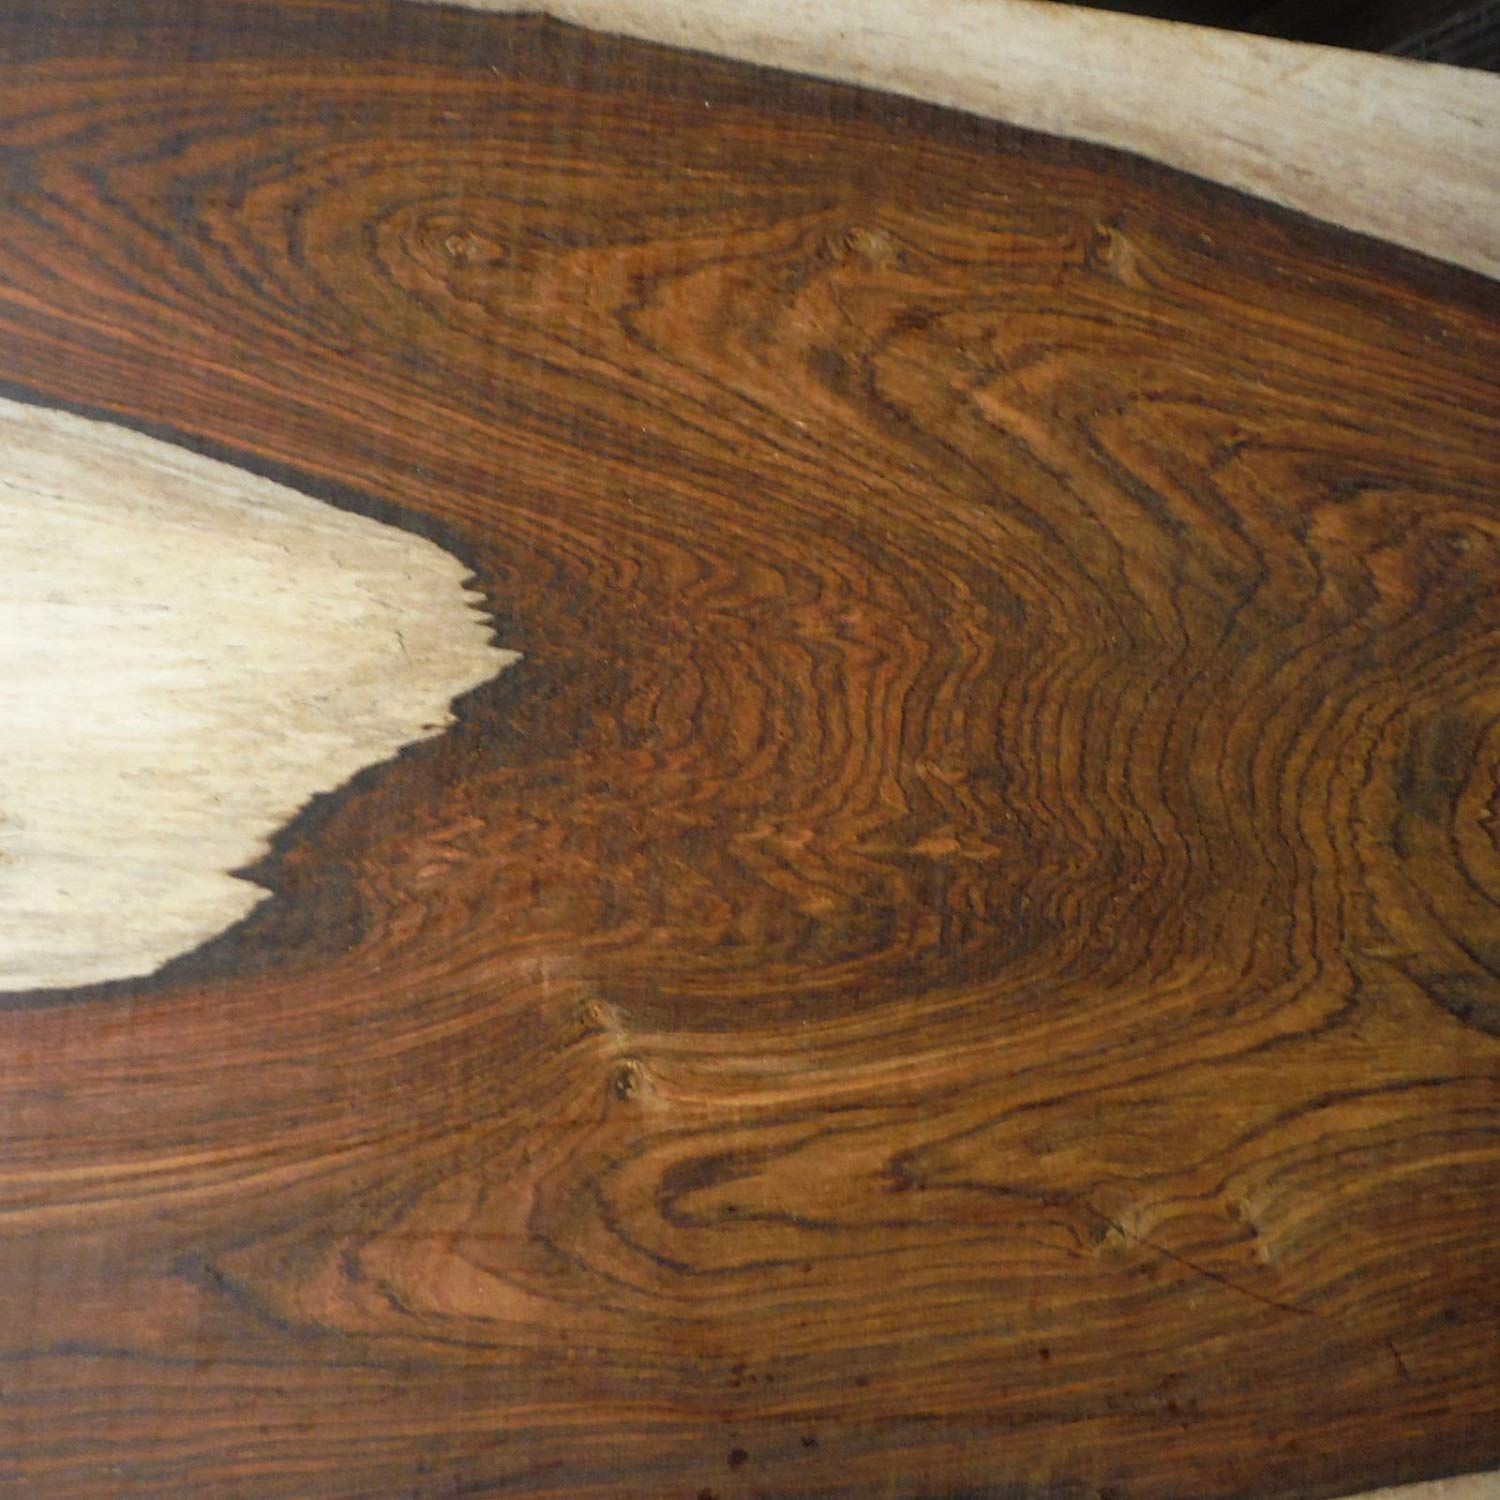 Cocobolo Rosewood, planed 2.125 inches thick, kiln dried, ONE BOARD FOOT